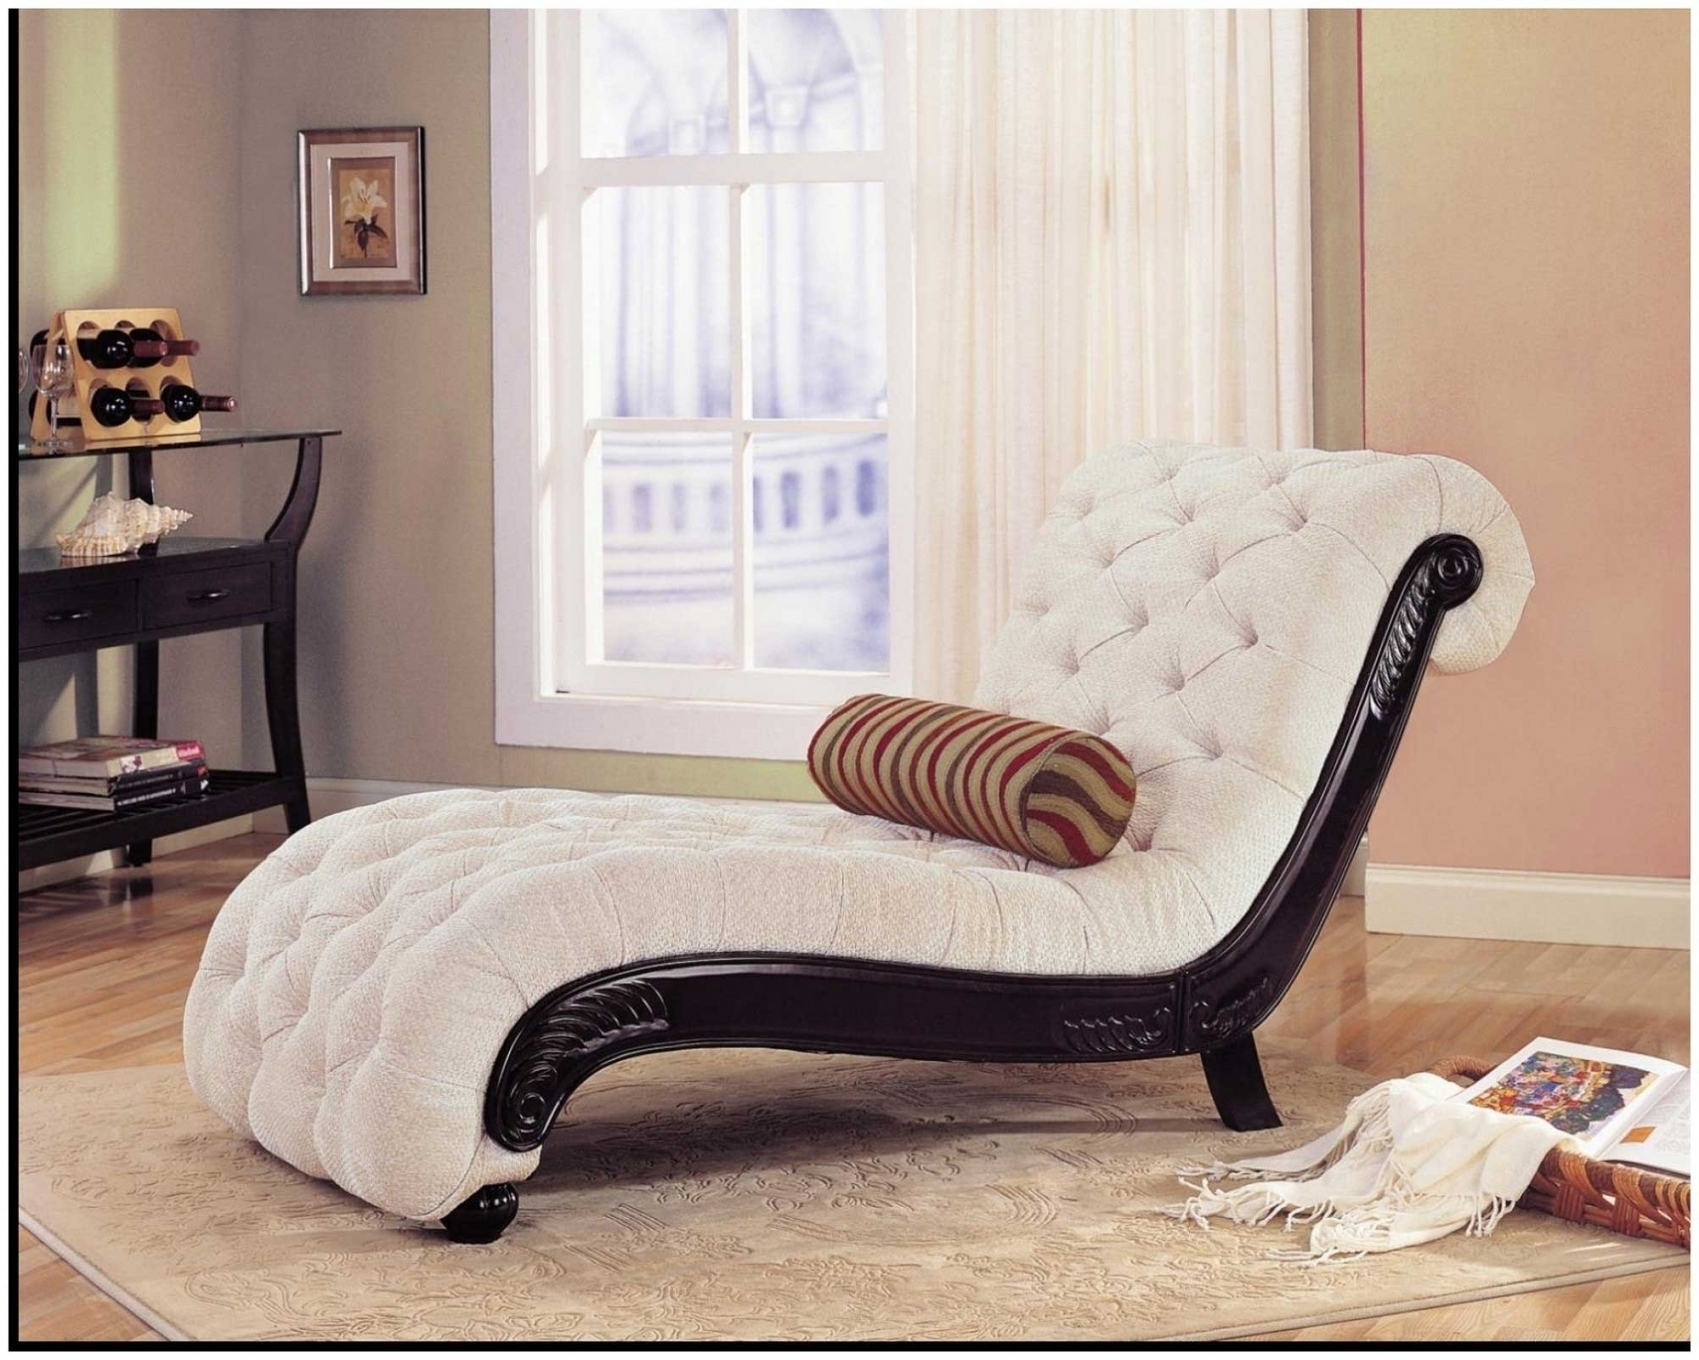 Most Recently Released Bedroom Chaise Lounge Chairs With Fascinating Bedroom Chaise Lounge Chairs Indoor White Colour For (View 11 of 15)